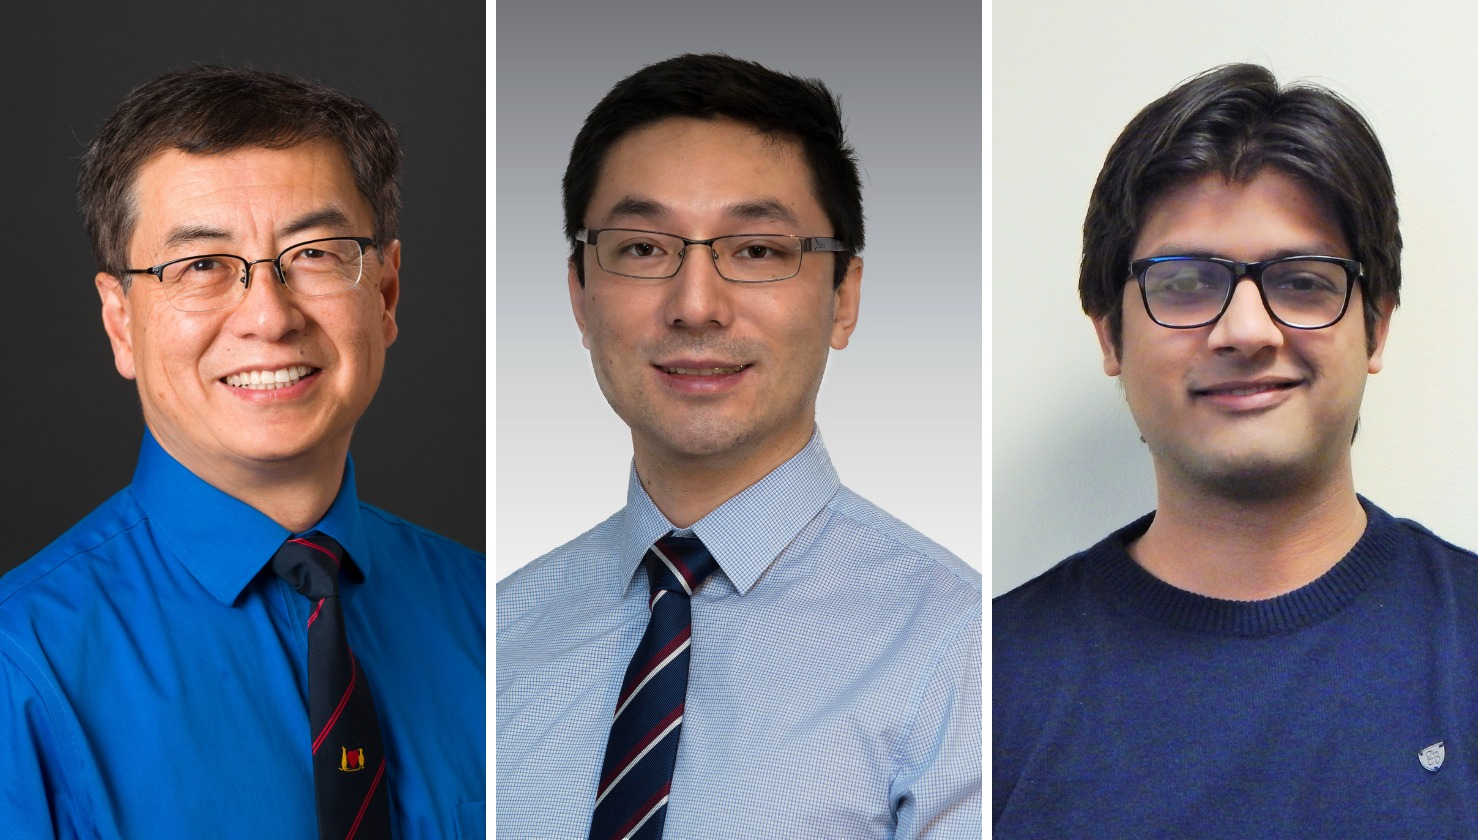 John Hwa, MD, PhD, Sean Gu, MD, PhD, and Tarun Tyagi, PhD